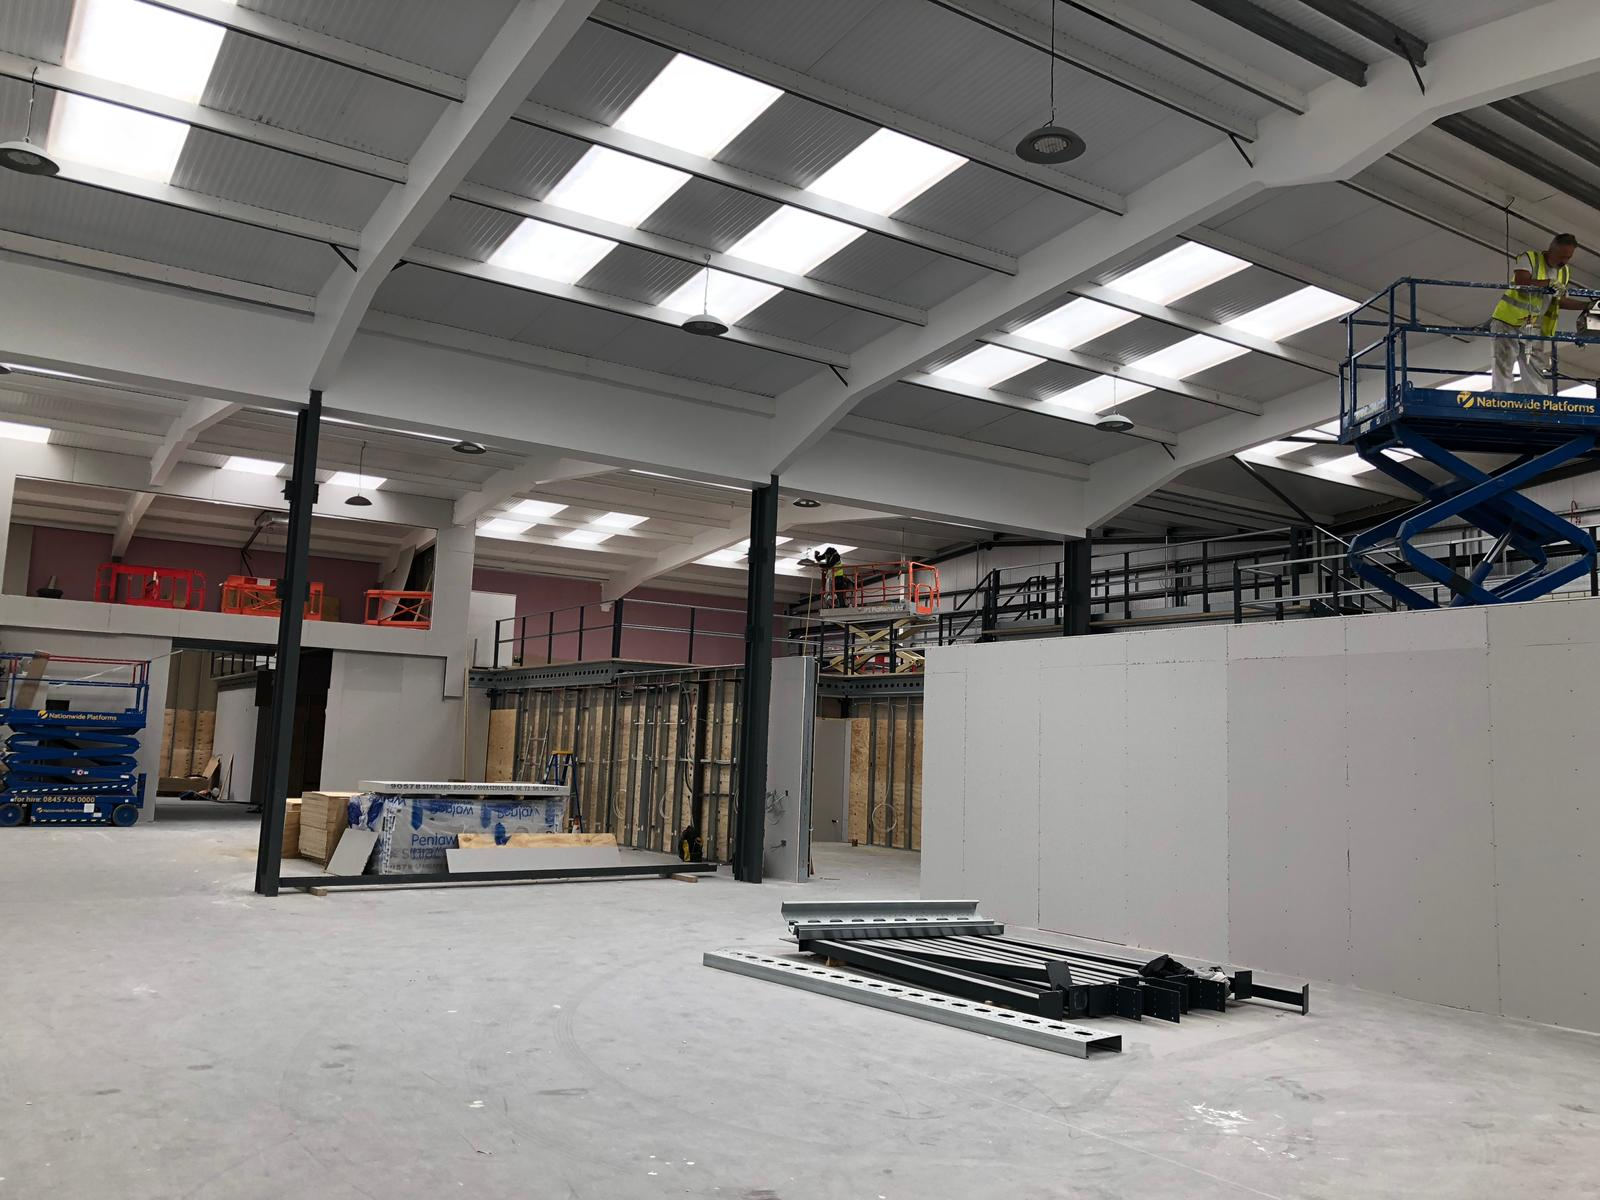 Work Progressing On Schedule At Mowlem Trading Estate In